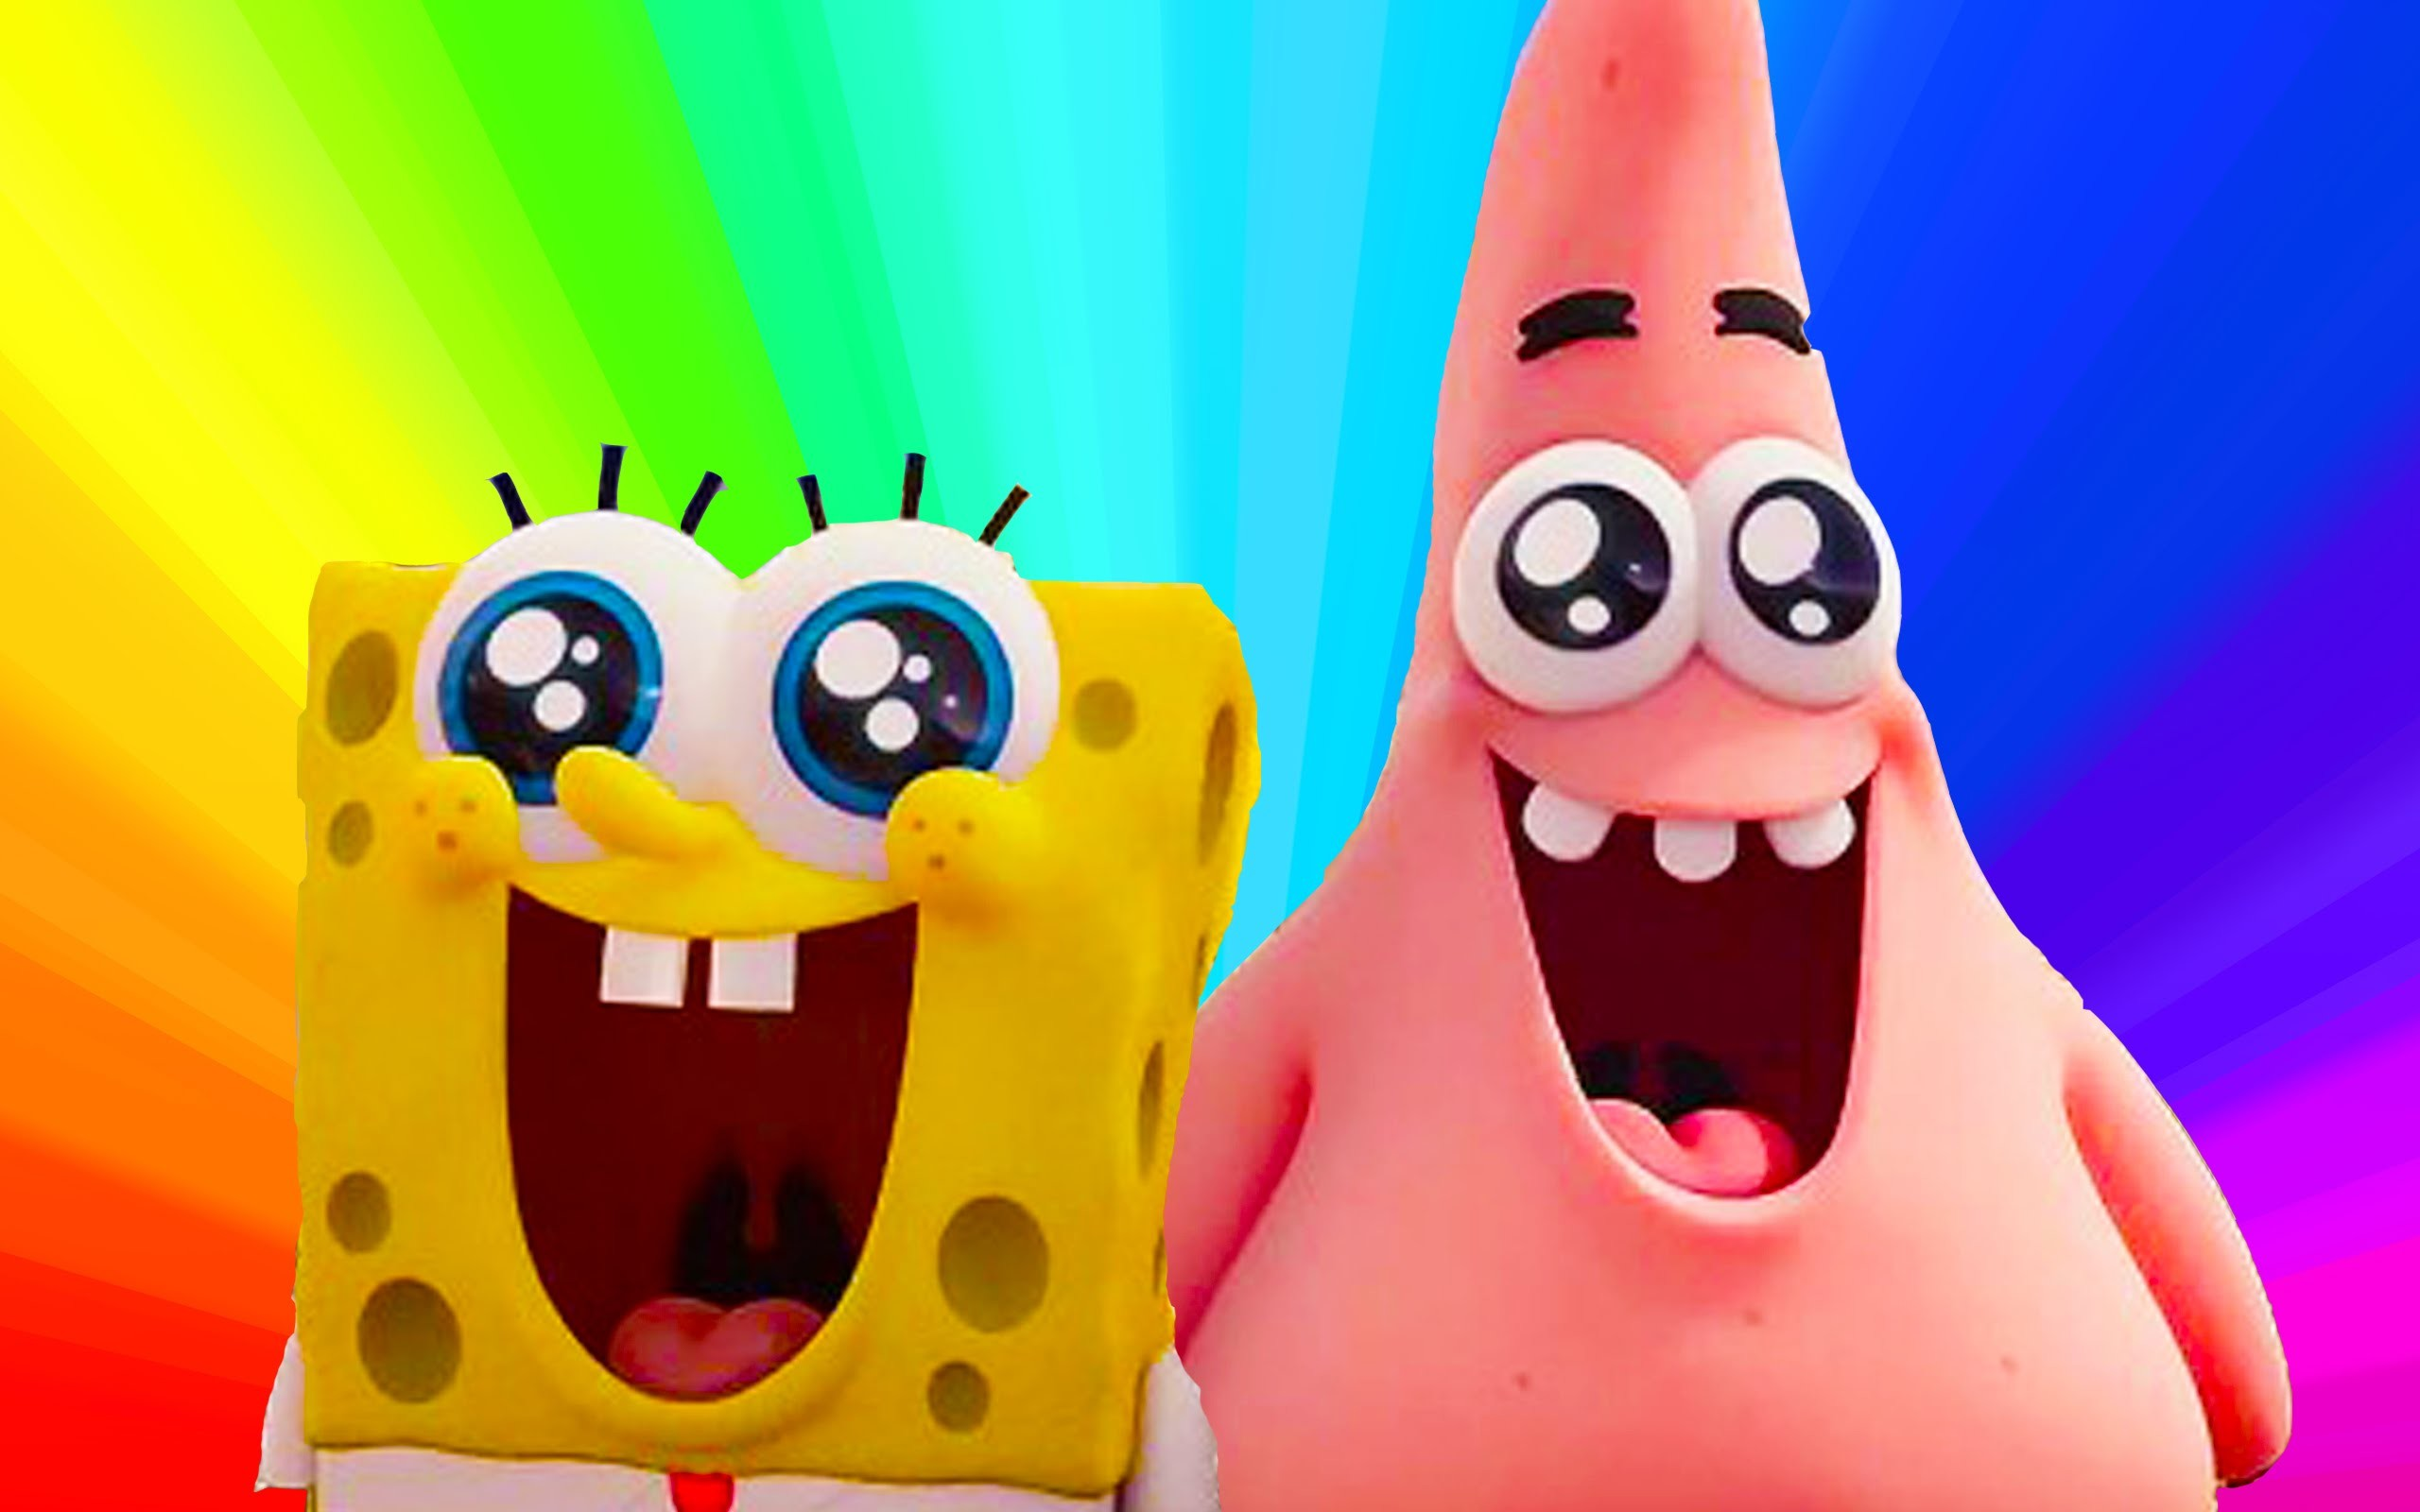 Meet Spongebob & Patrick Star, Easy Play doh creation for kids – YouTube